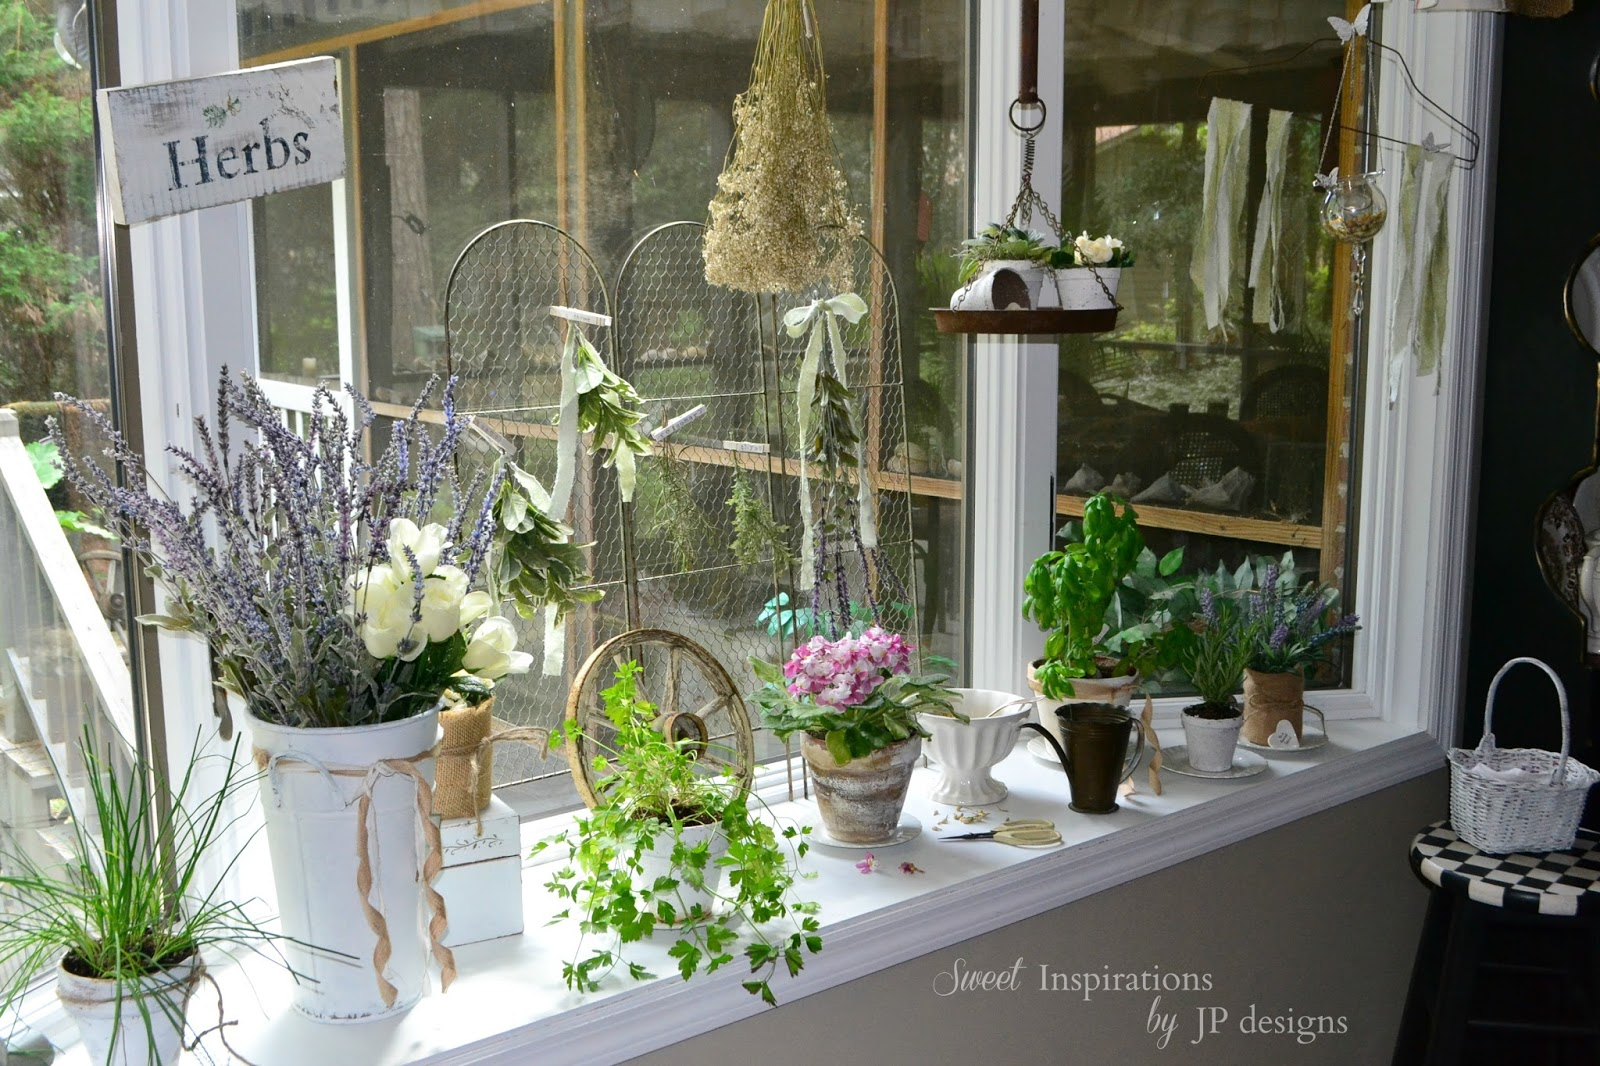 Sweet Inspirations By Jp Designs My Kitchen Window Herb